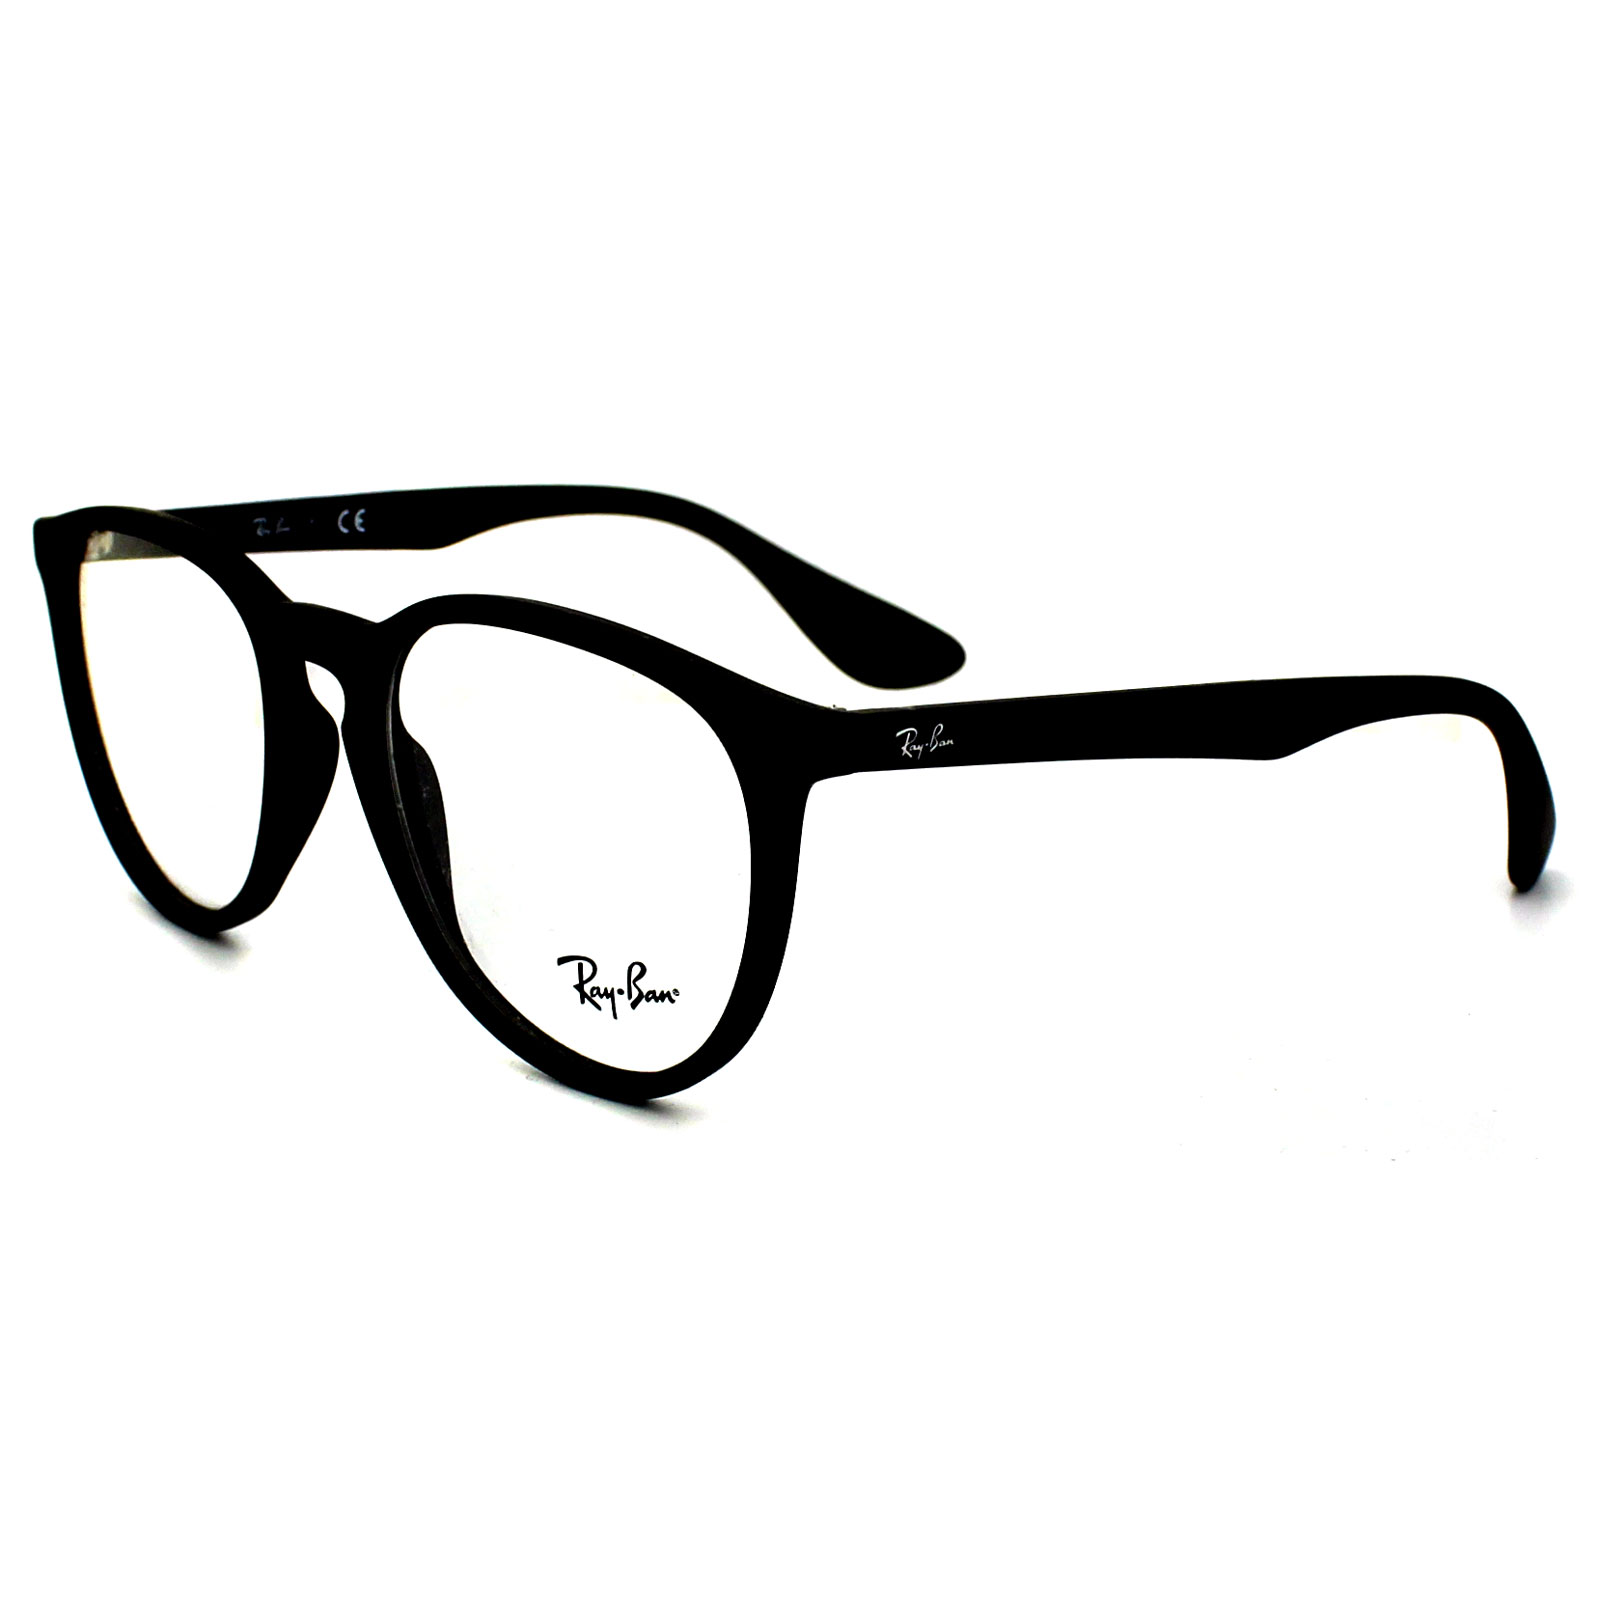 Cheap Ray-Ban 7046 Glasses Frames - Discounted Sunglasses